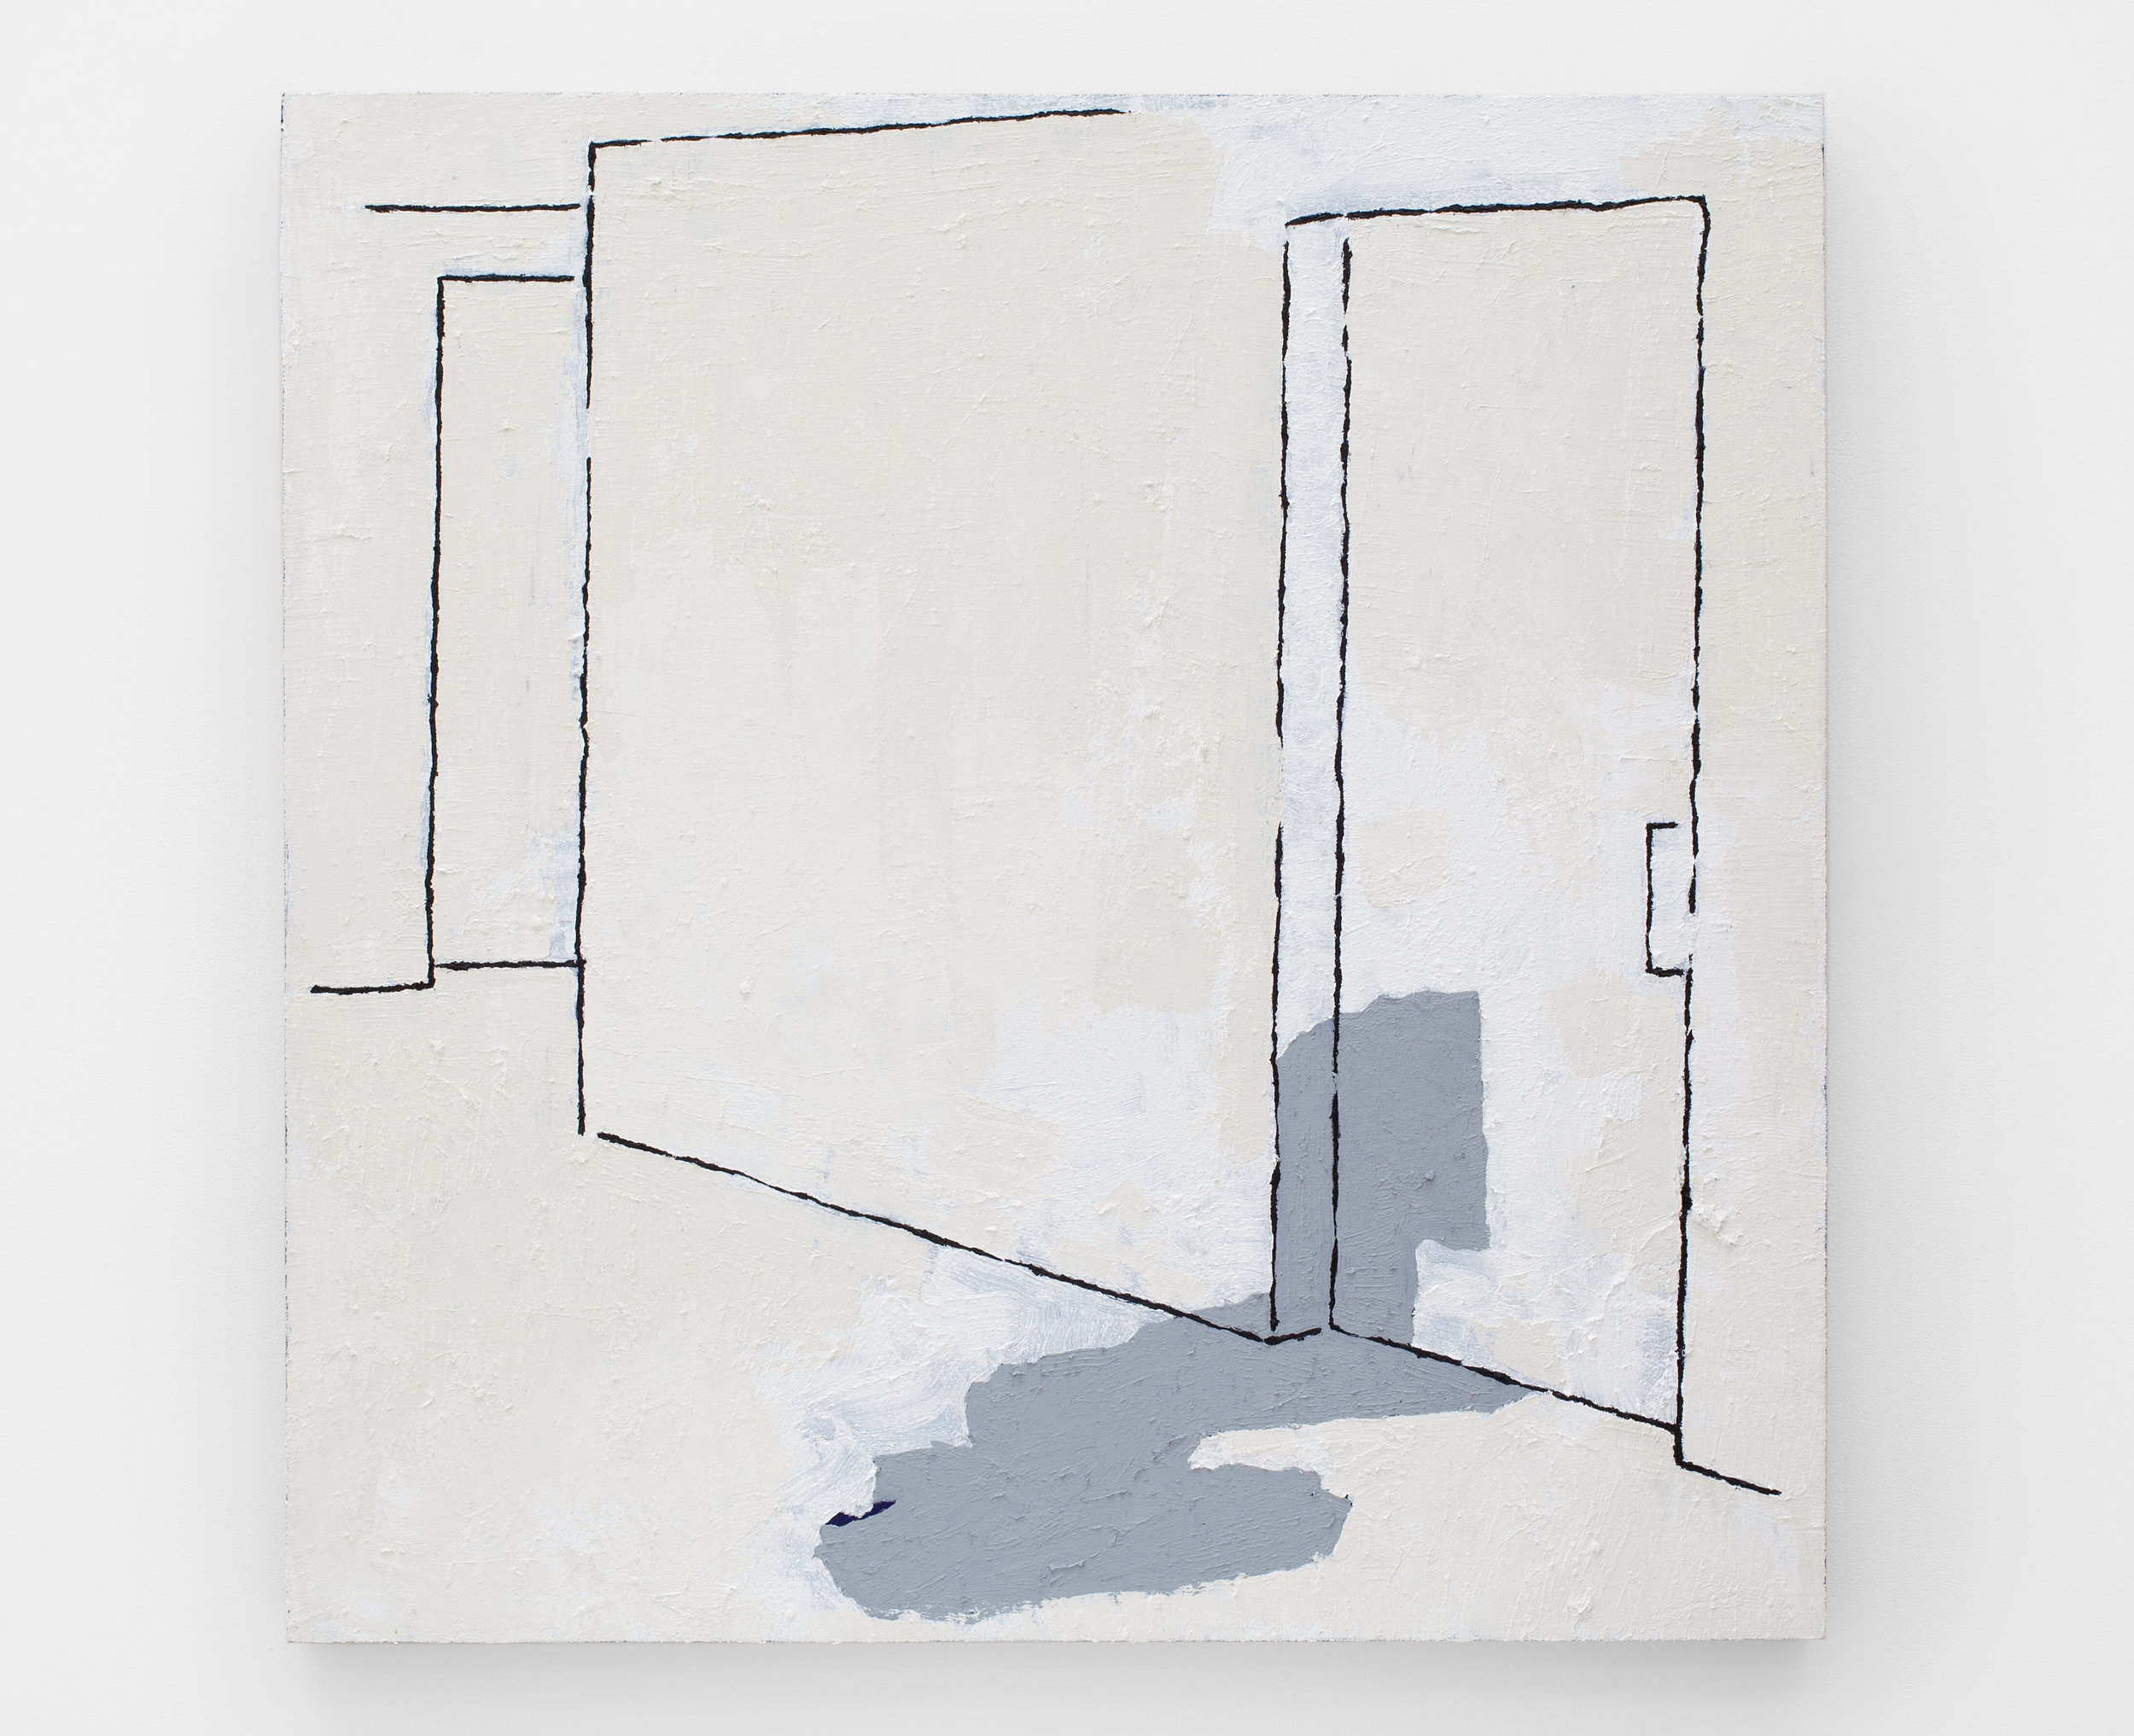 Hallway Study, 2014 acrylic on linen 91,5 x 91,5 cm - 36 x 36 inches